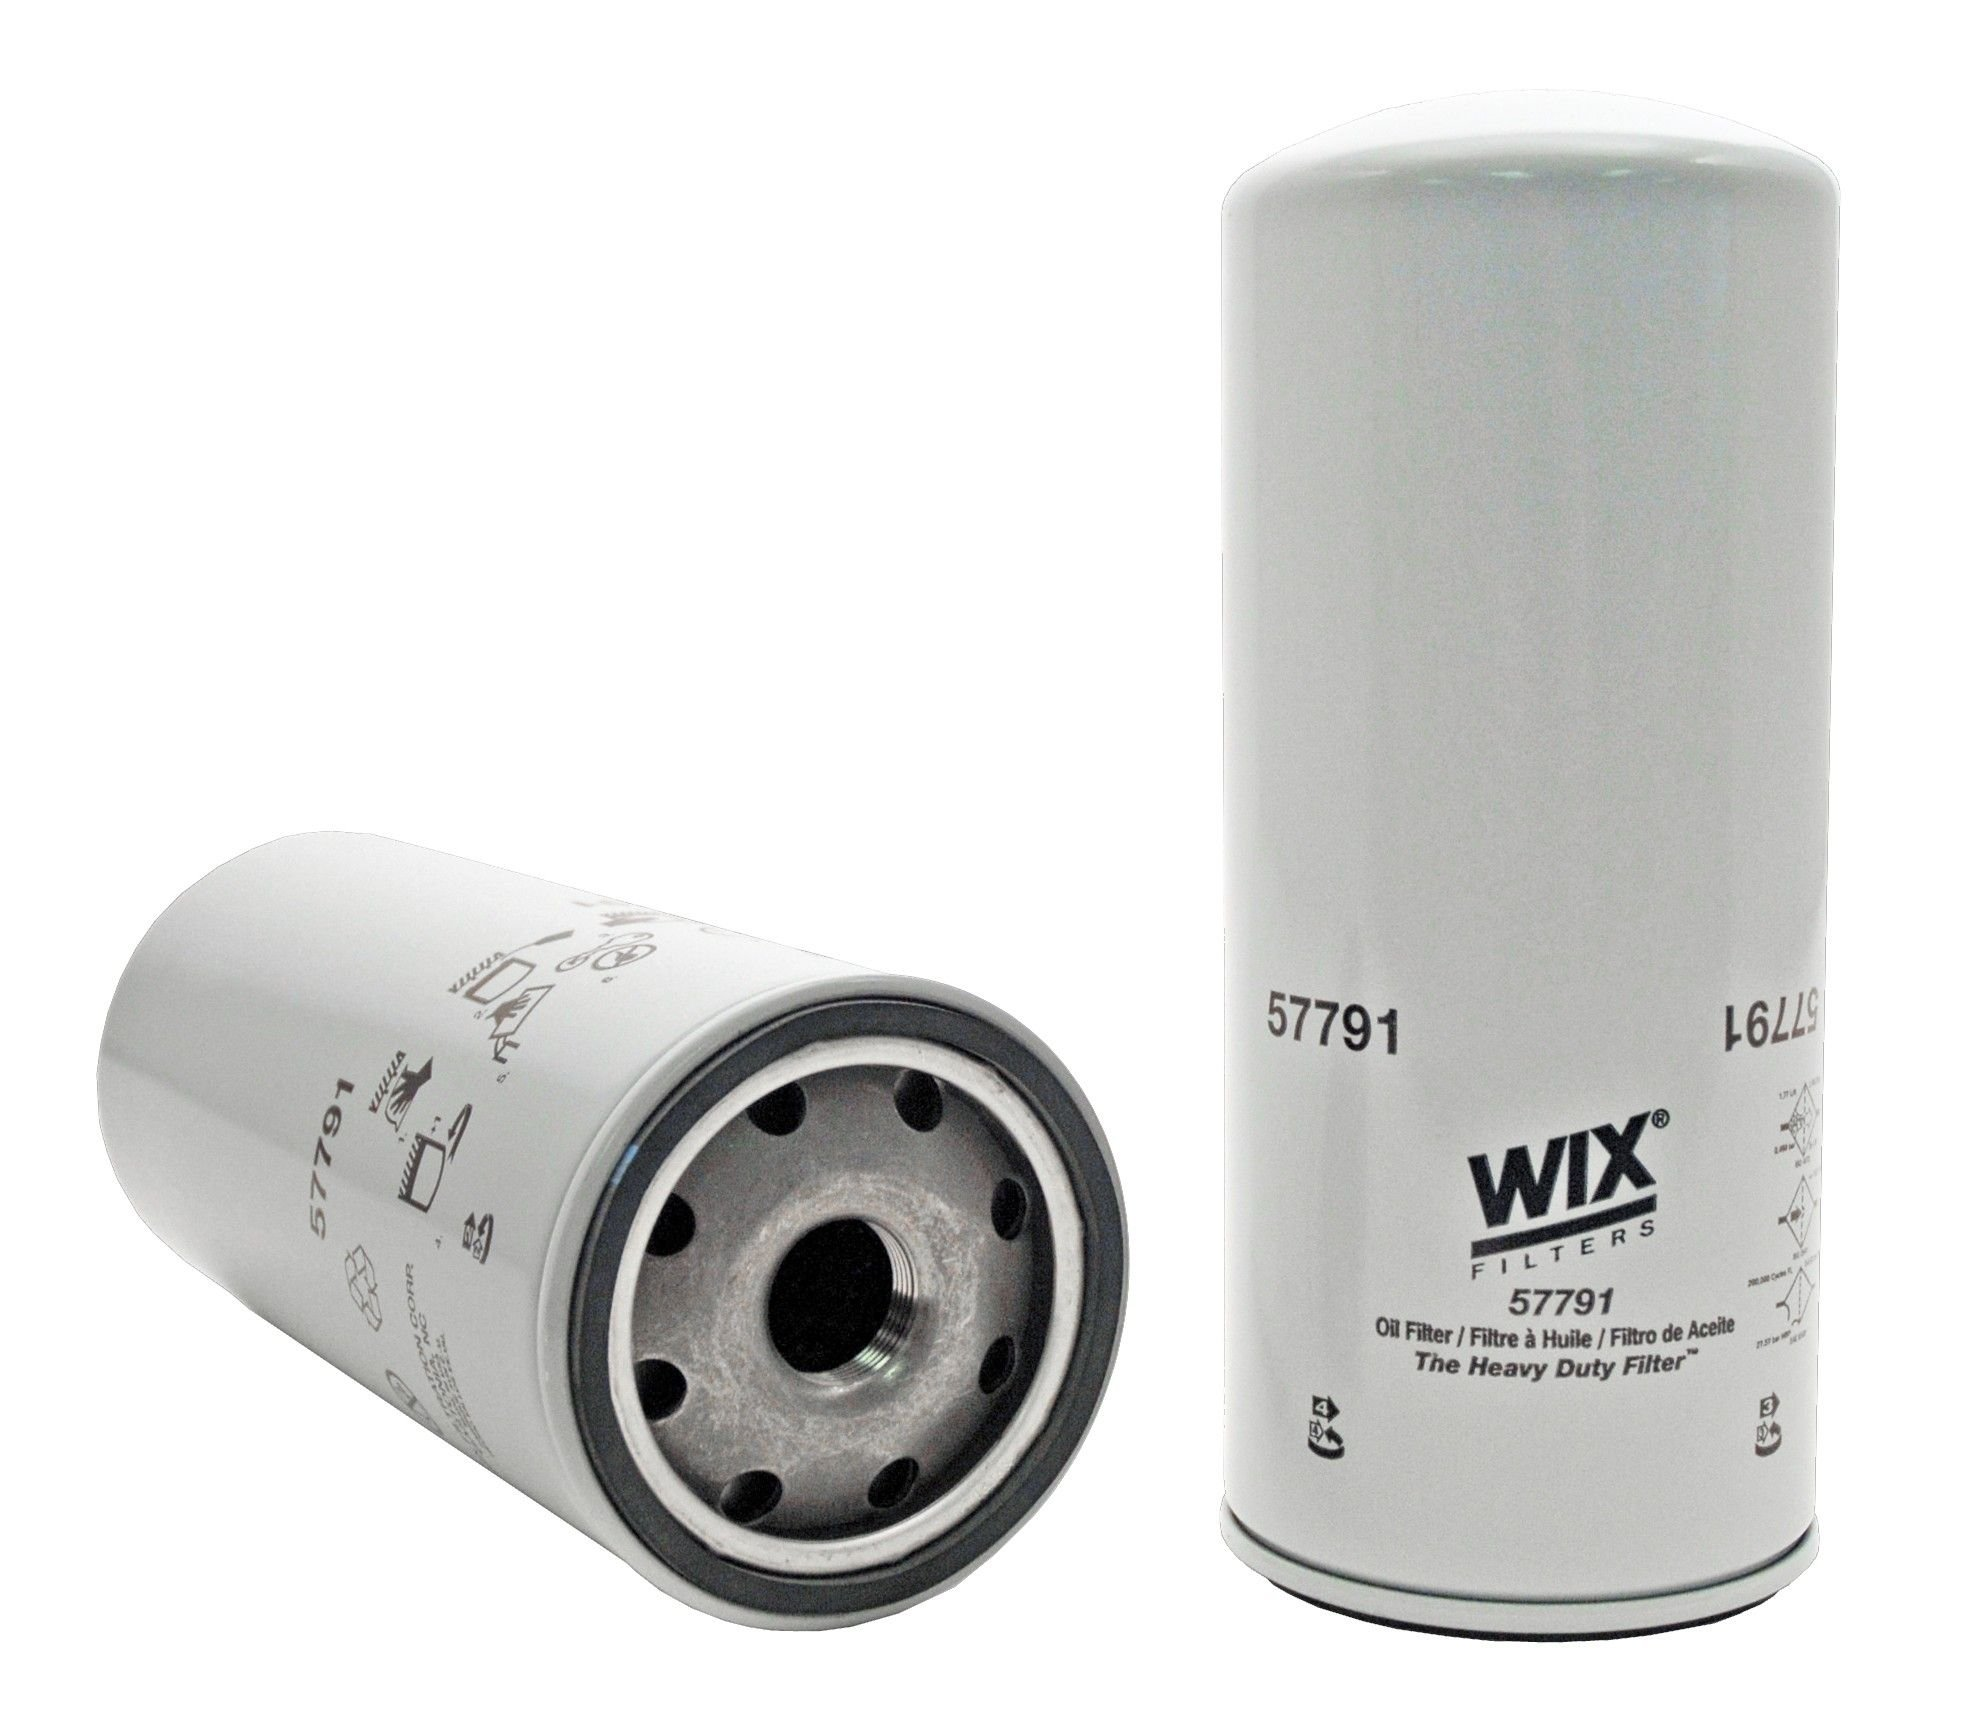 Volvo VN Engine Oil Filter Replacement (Hastings, Wix) » Go-Parts